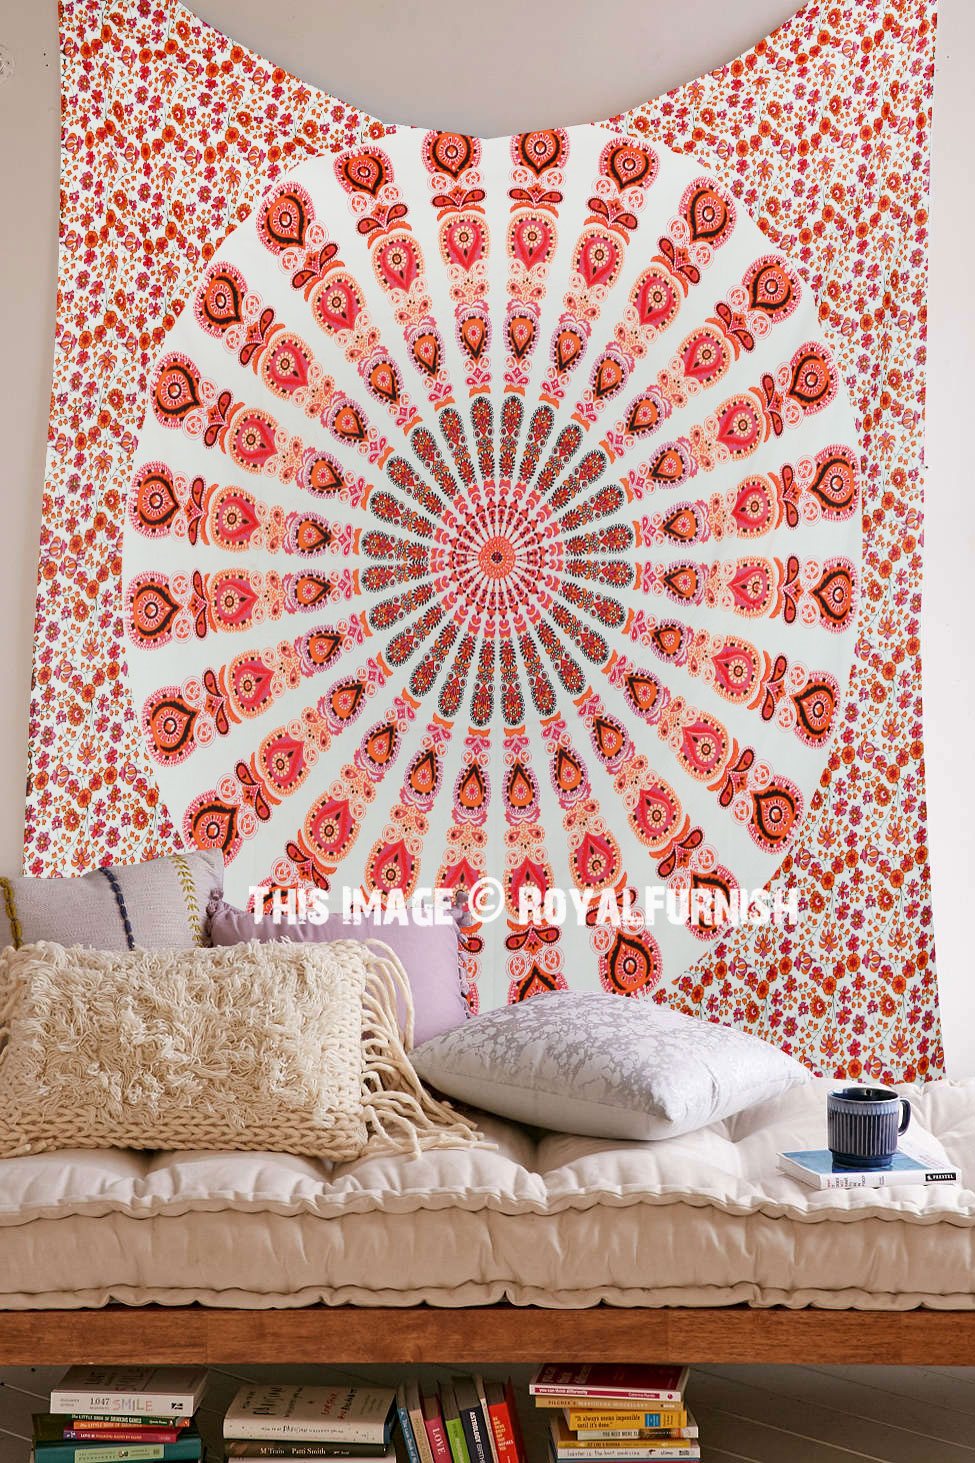 White & Orange Mixed Mandala Tapestry, Hippie Boho Wall Hanging Bedspread Intended For Most Up To Date Blended Fabric Southwestern Bohemian Wall Hangings (View 11 of 20)